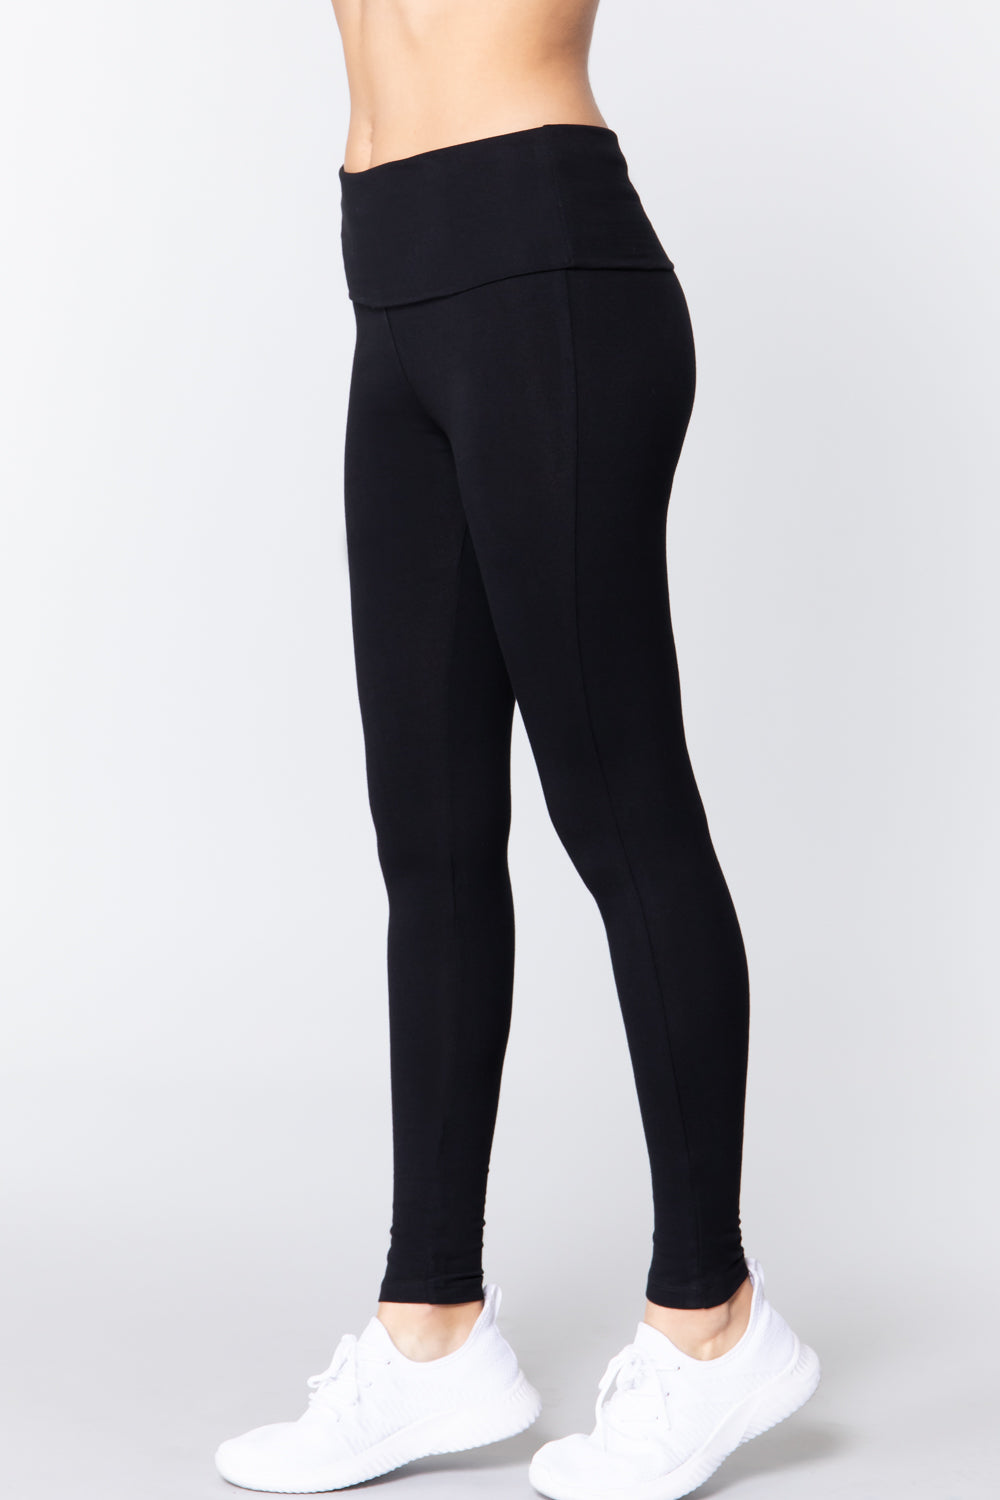 Women's Waist Banded Long Black Yoga Pants Small